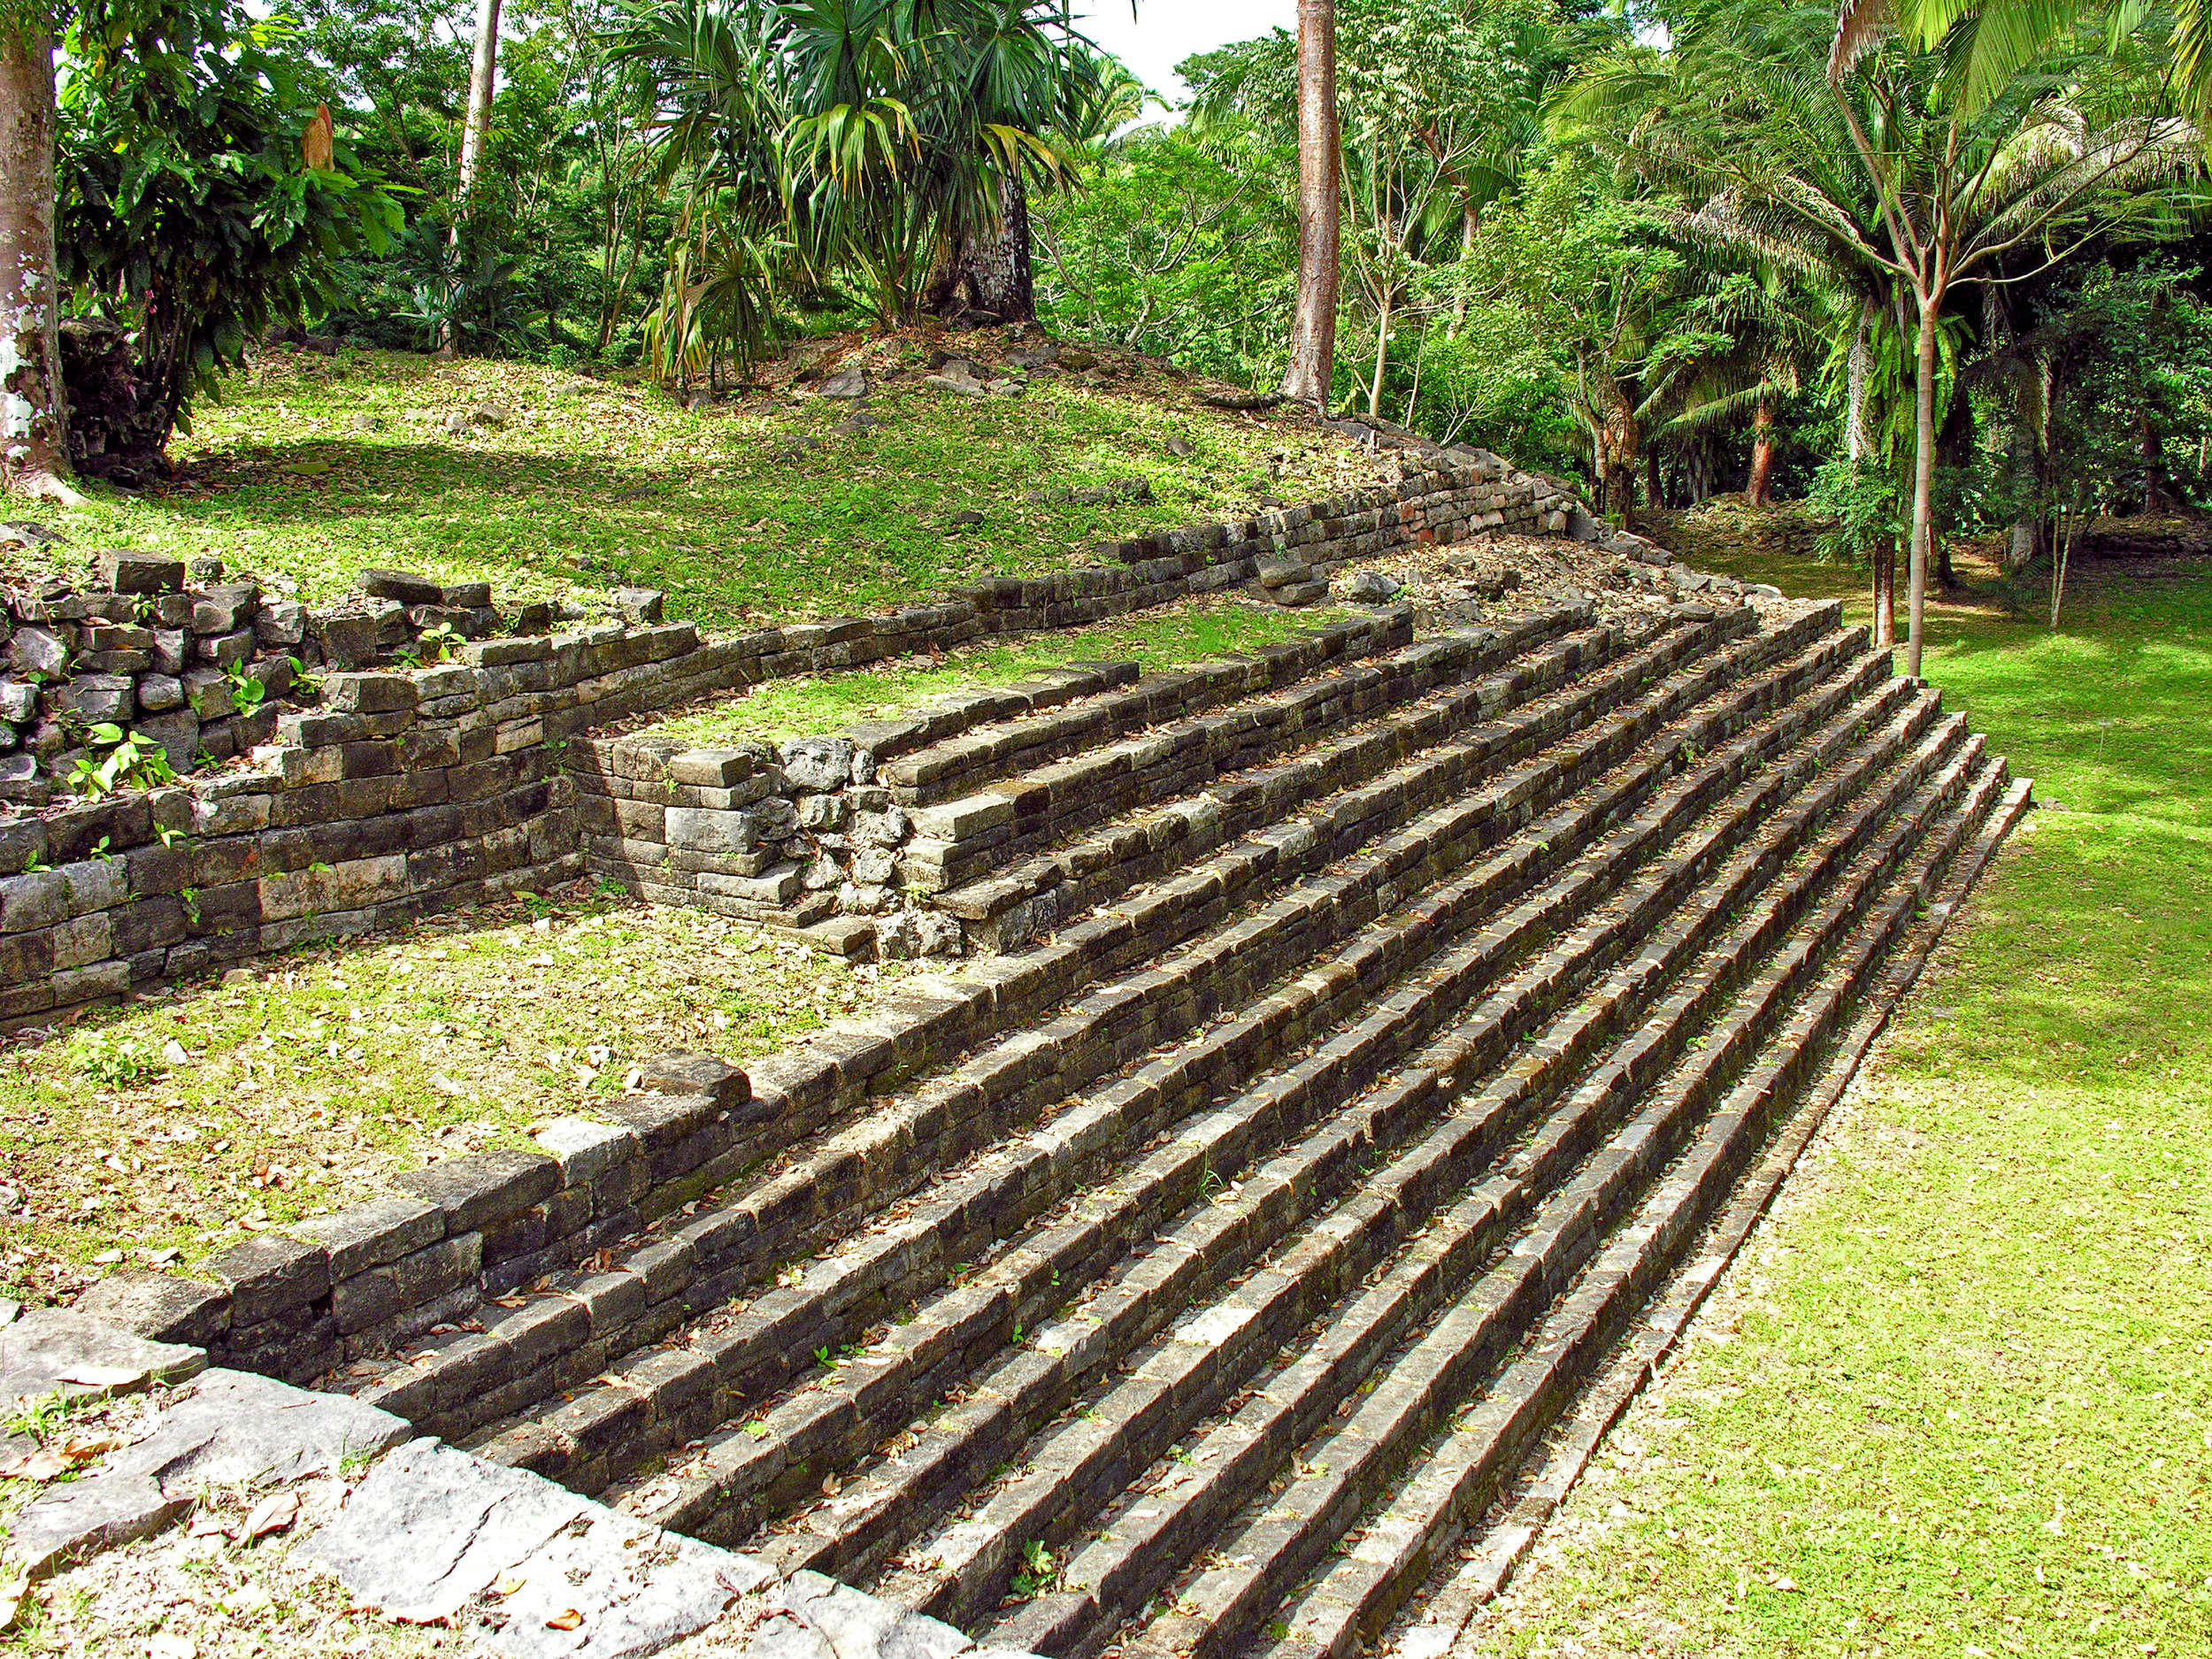 Lubaantun is the largest Maya site of southern Belize